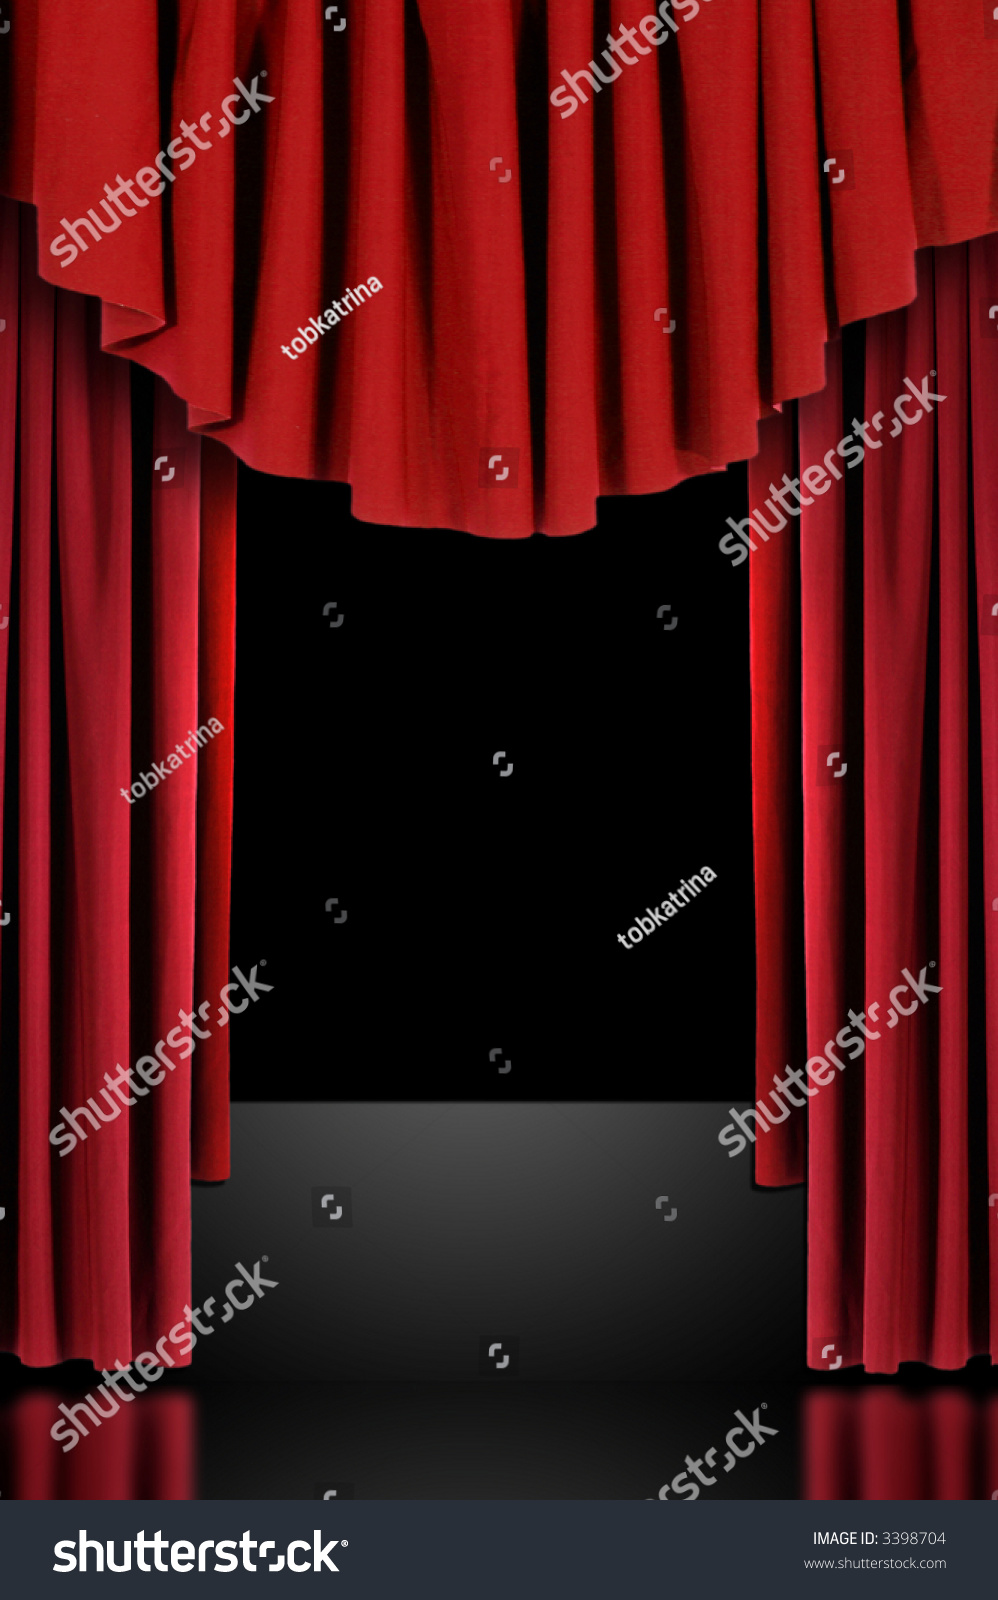 Stock photo dramatic red old fashioned elegant theater stage stock - Red Vertical Draped Theatre Curtains On Black